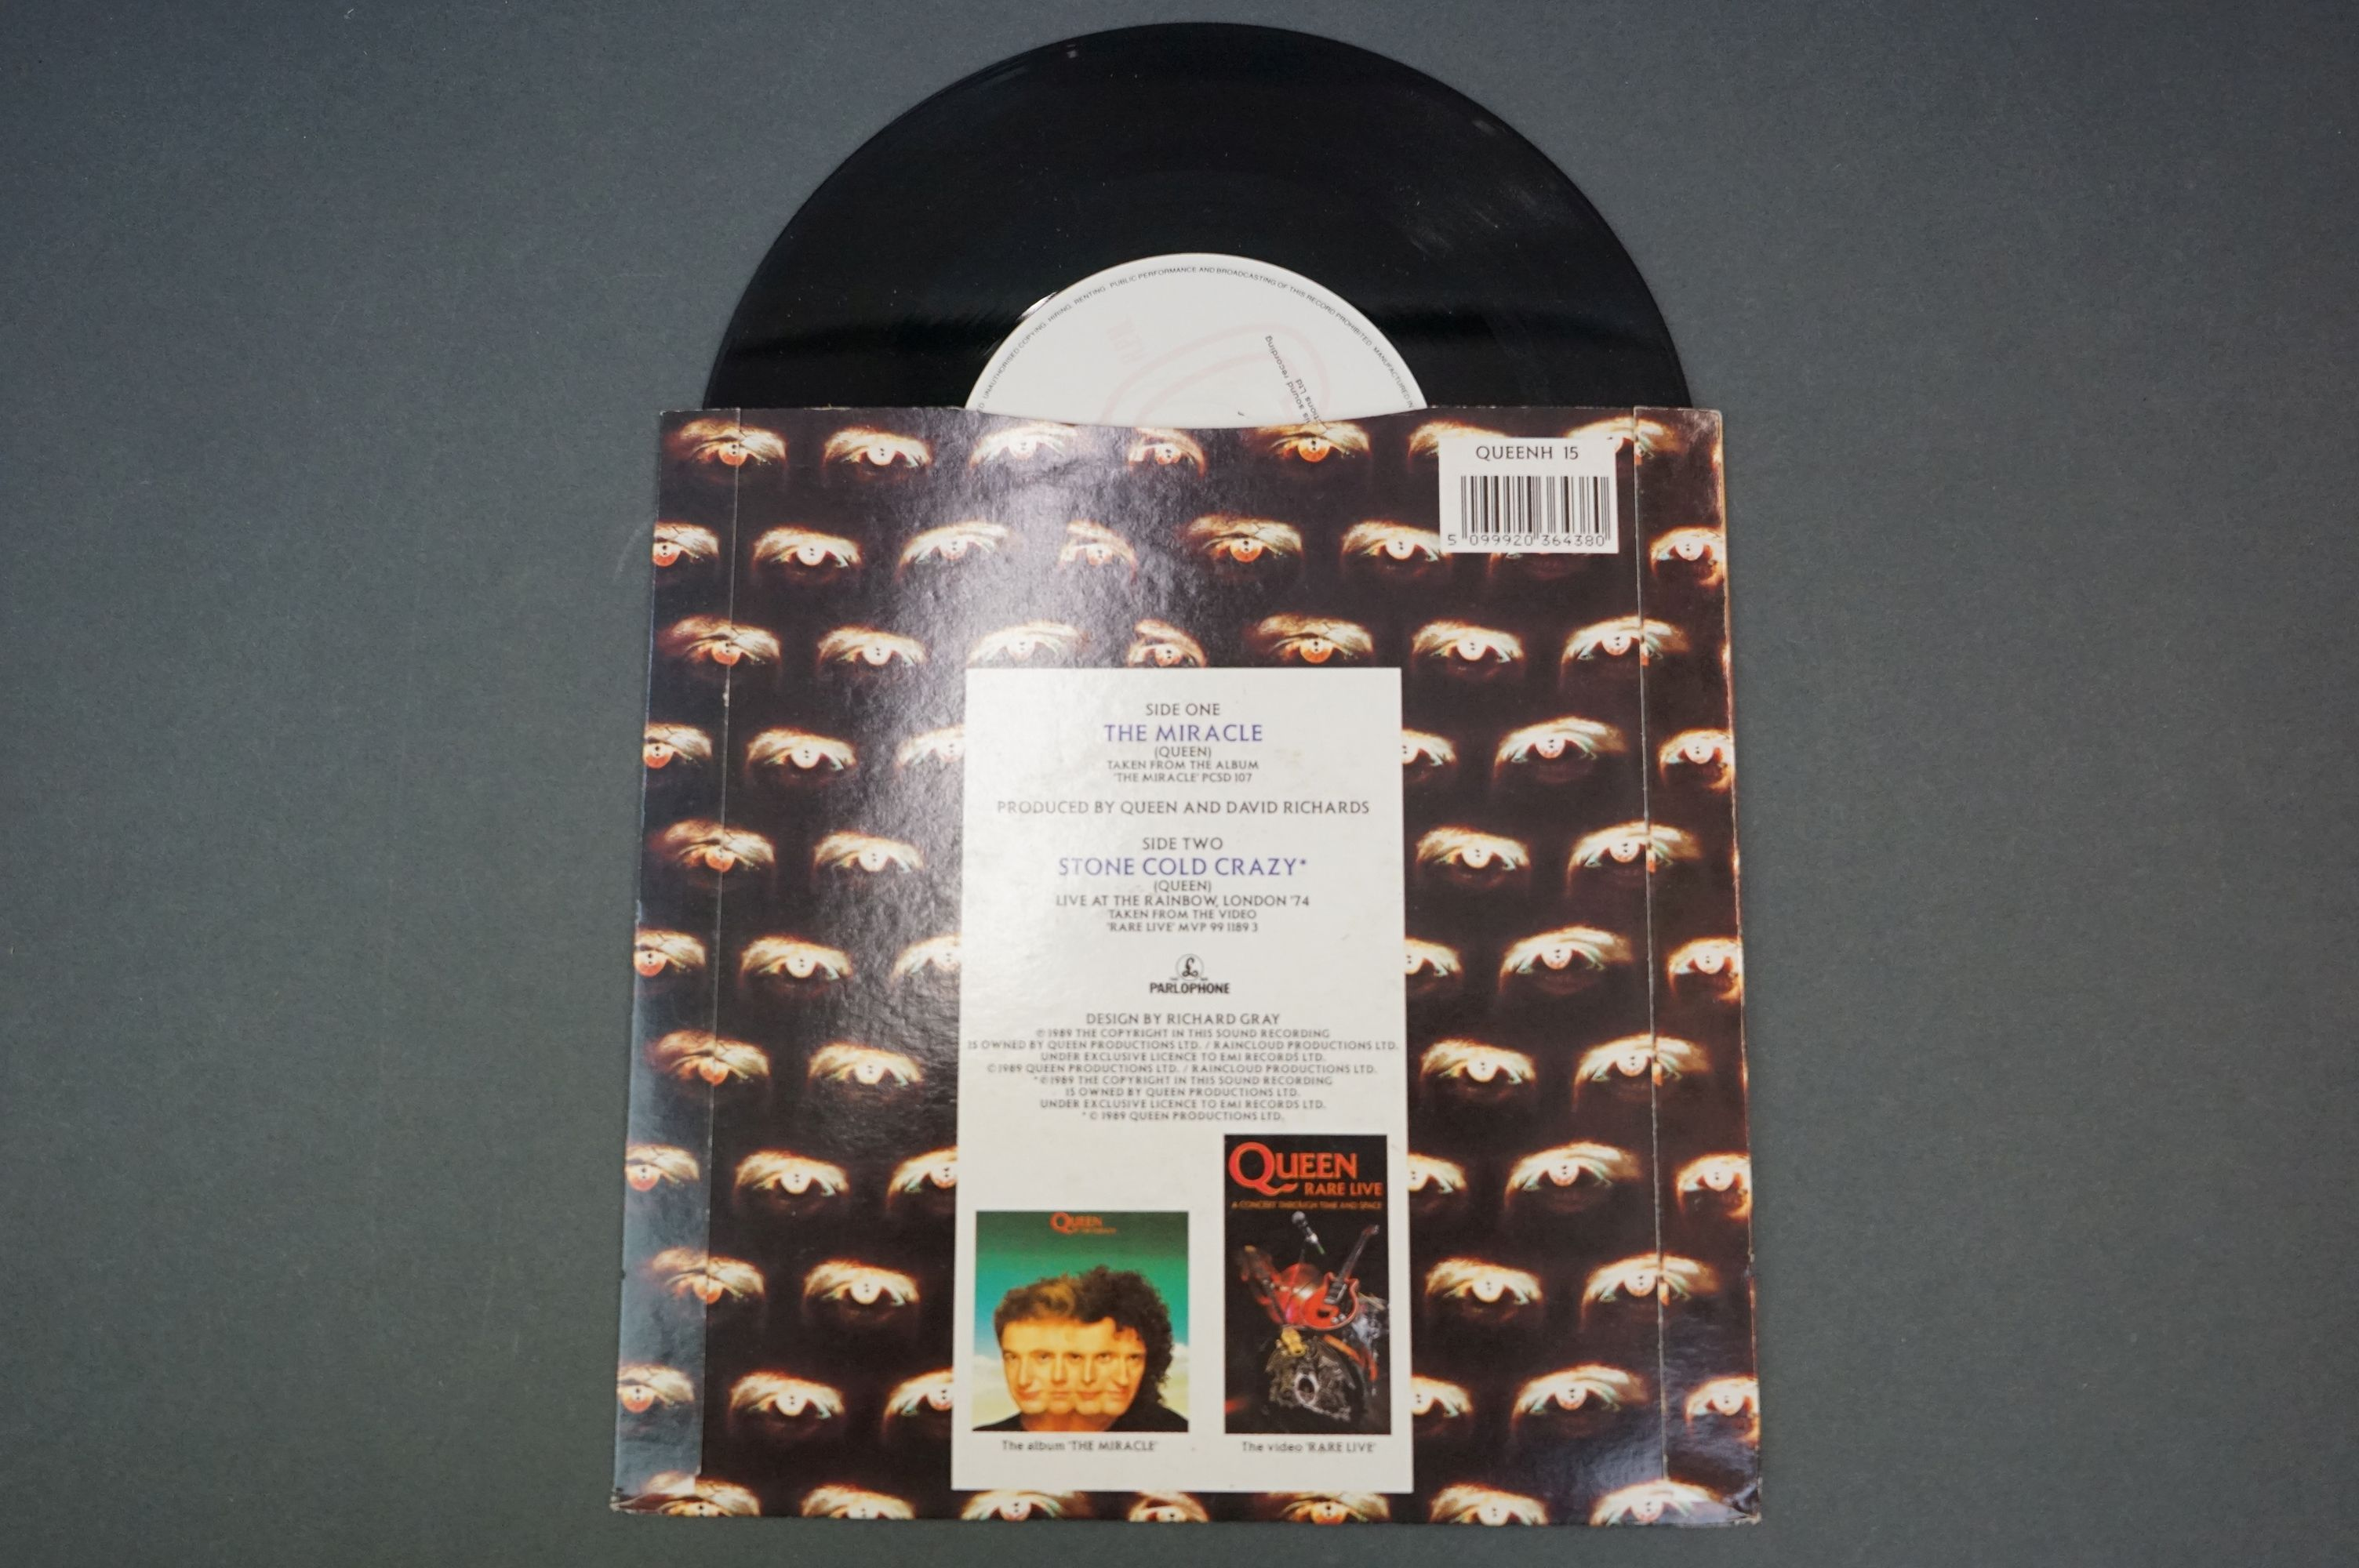 Vinyl - Queen & related collection of 7 inch singles including 12 x No One But You Ltd Edn picture - Image 9 of 11